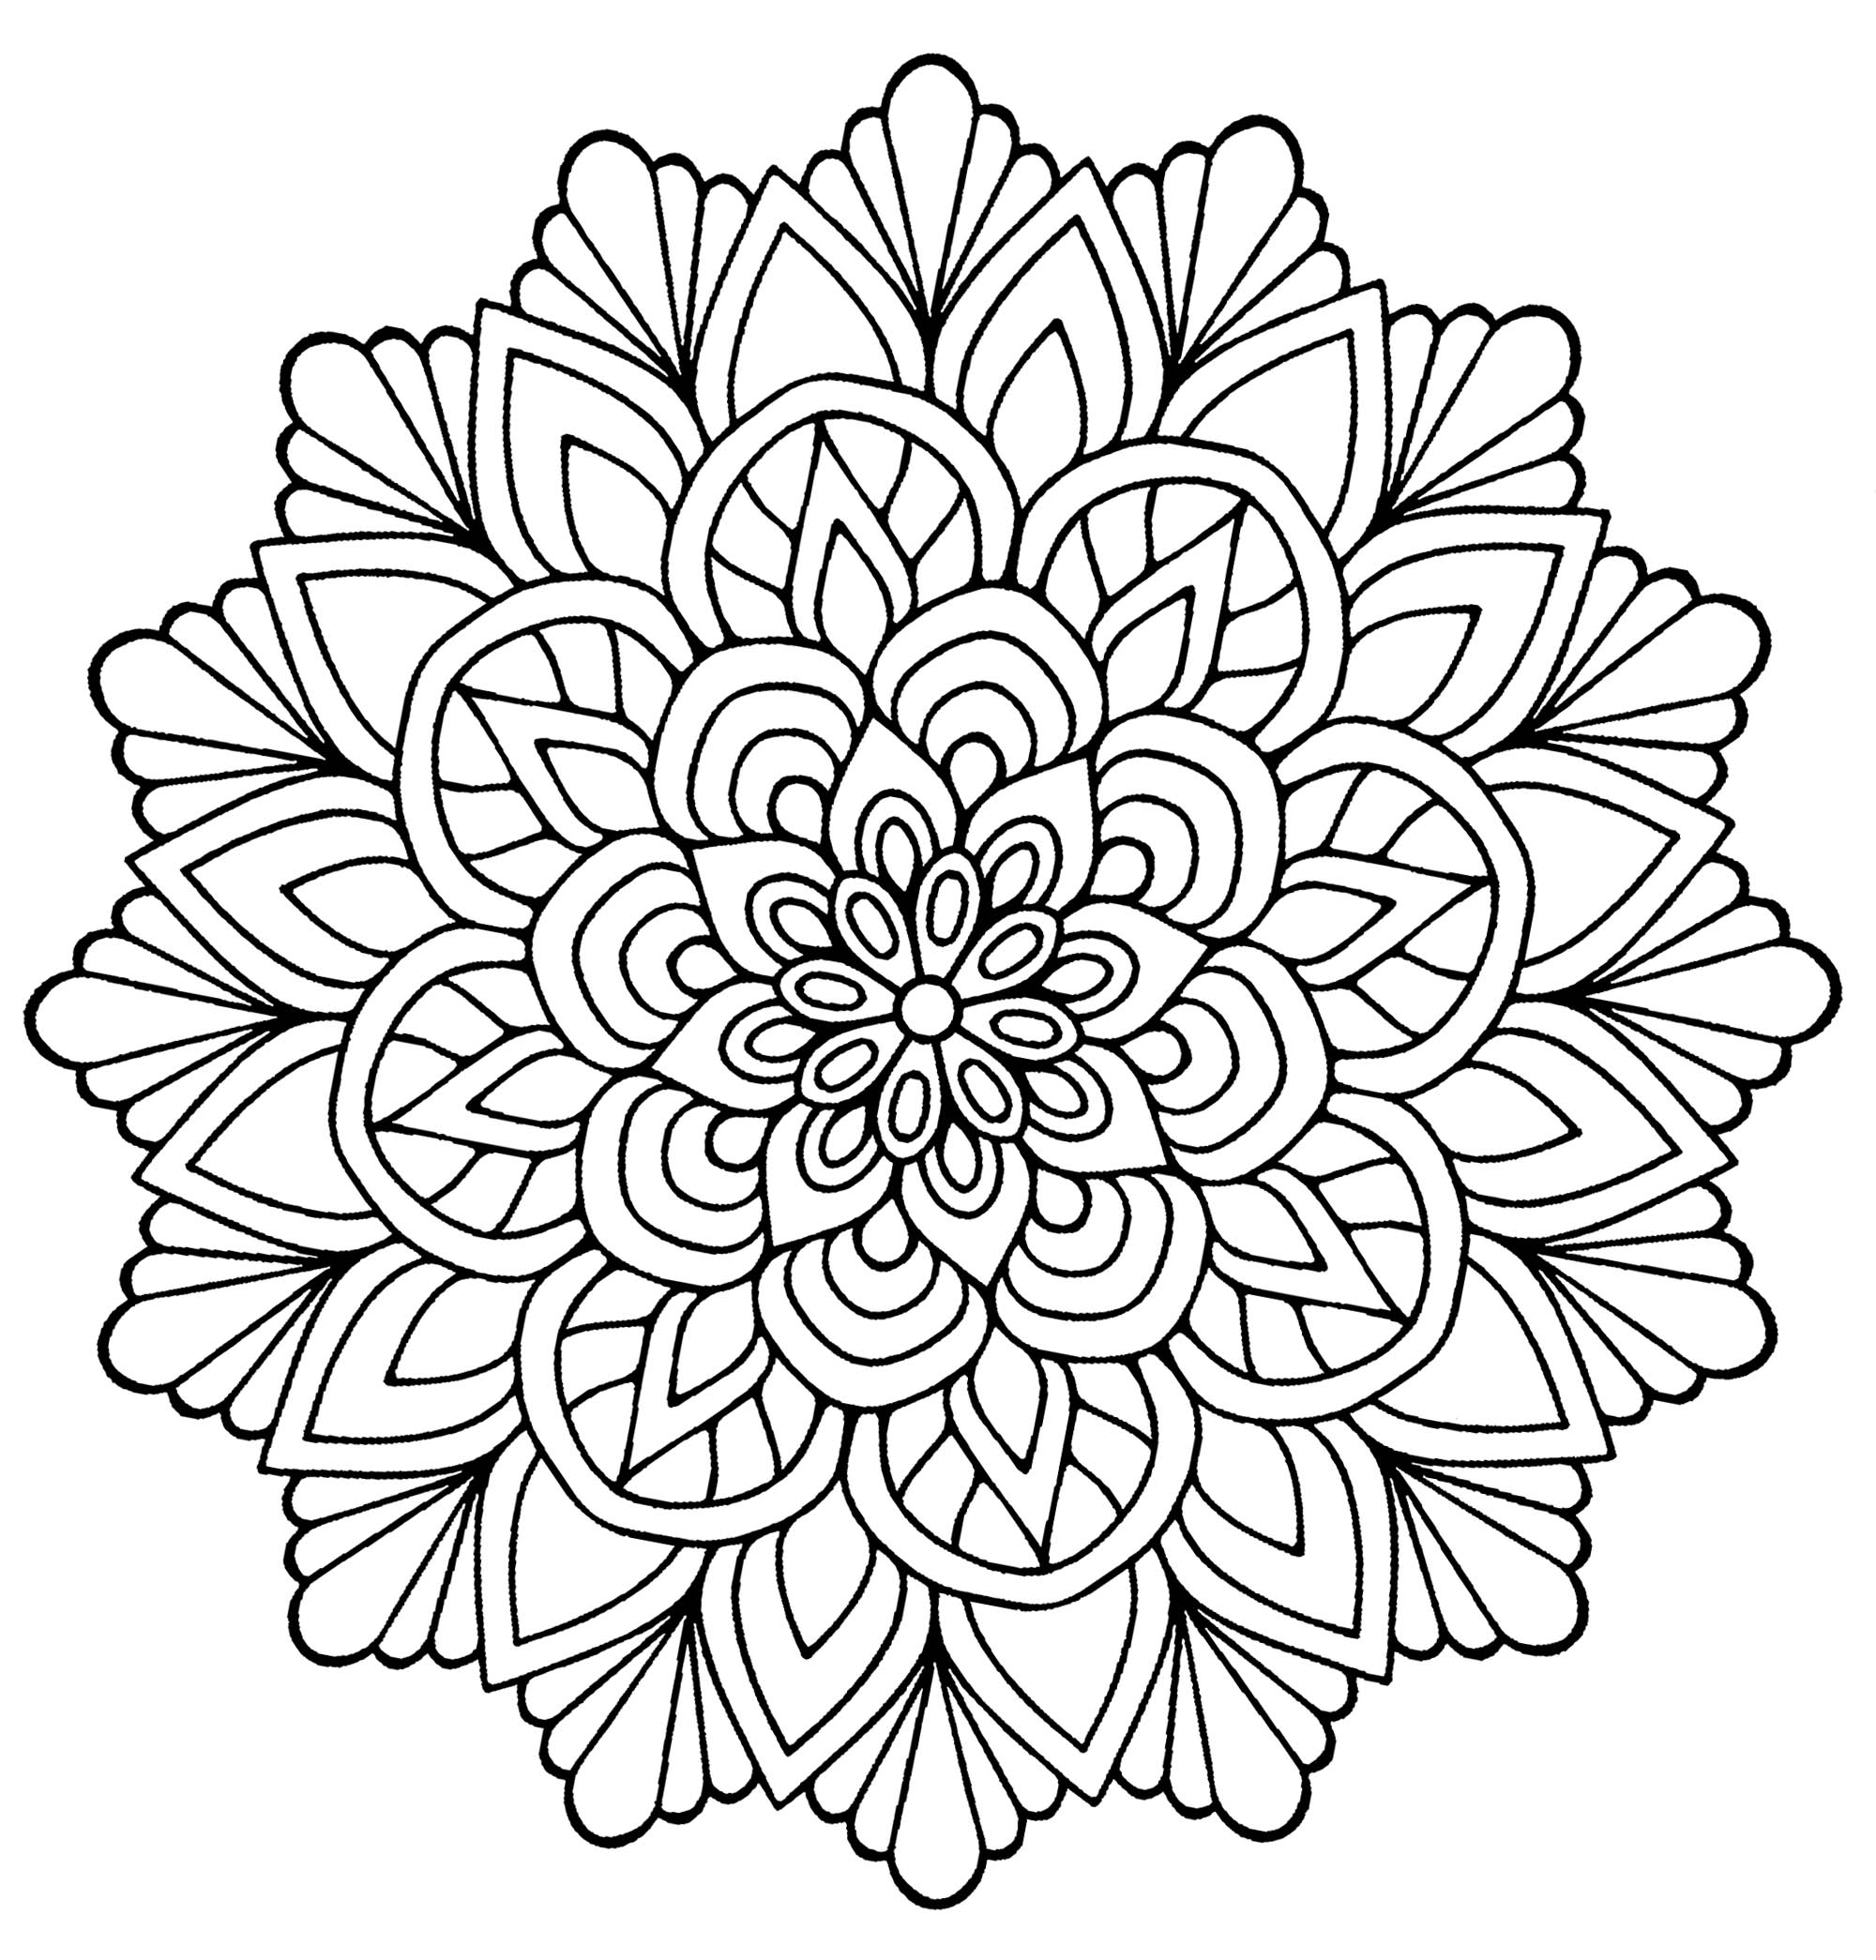 simple mandala flower coloring pages | Easy Flower with leaves - Simple Mandalas - 100% Mandalas ...